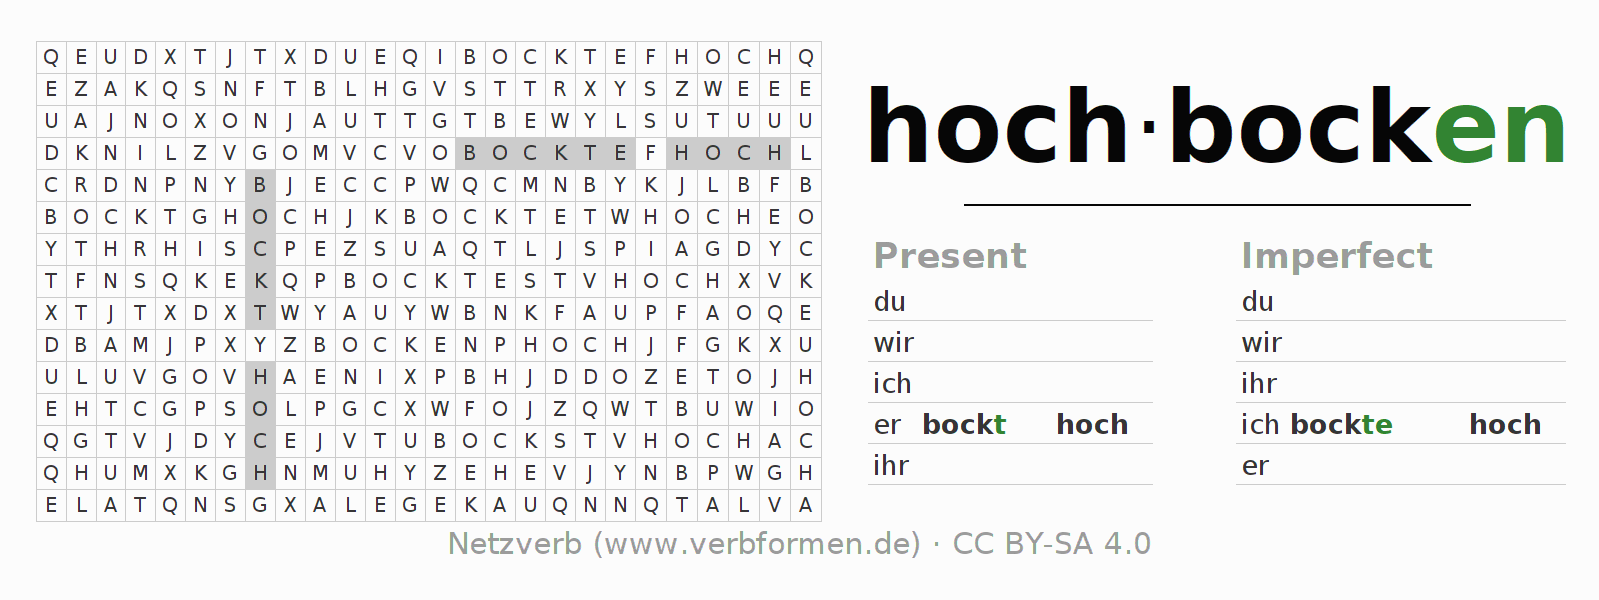 Word search puzzle for the conjugation of the verb hochbocken